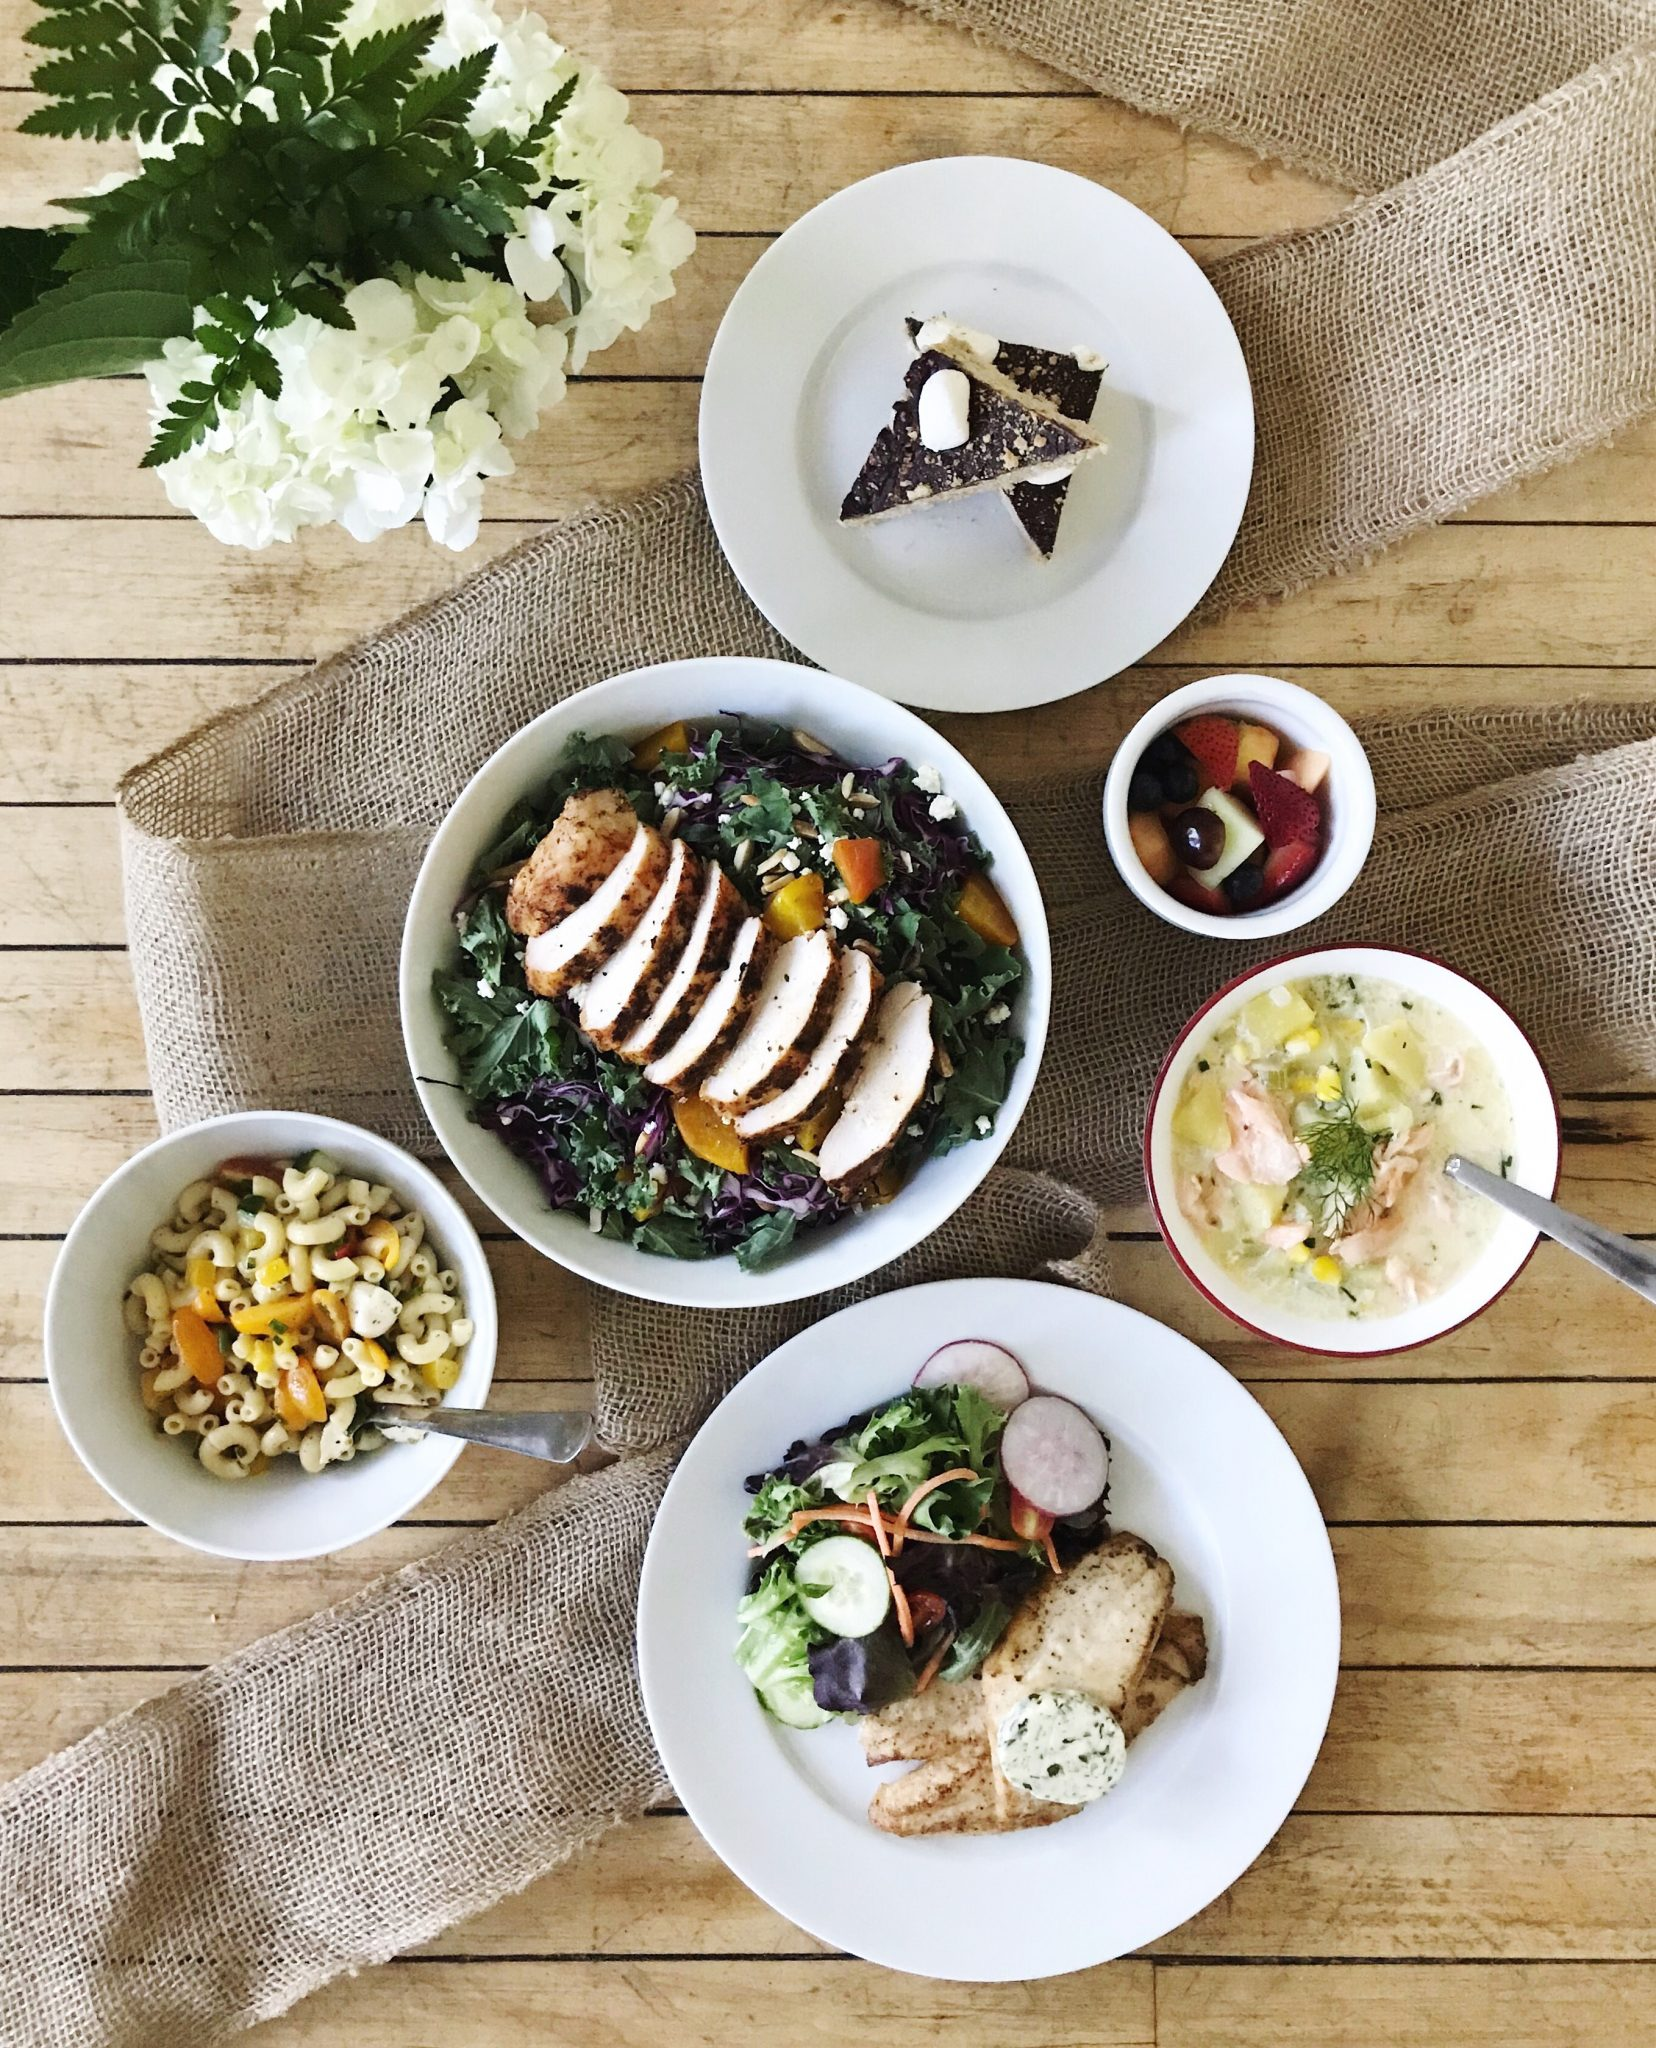 Pictured are examples of meals available from Warren-based meal prep and delivery company Feast & Fettle. / PHOTOS BY JANE LIU and STACEY DOYLE / COURTESY FEAST & FETTLE